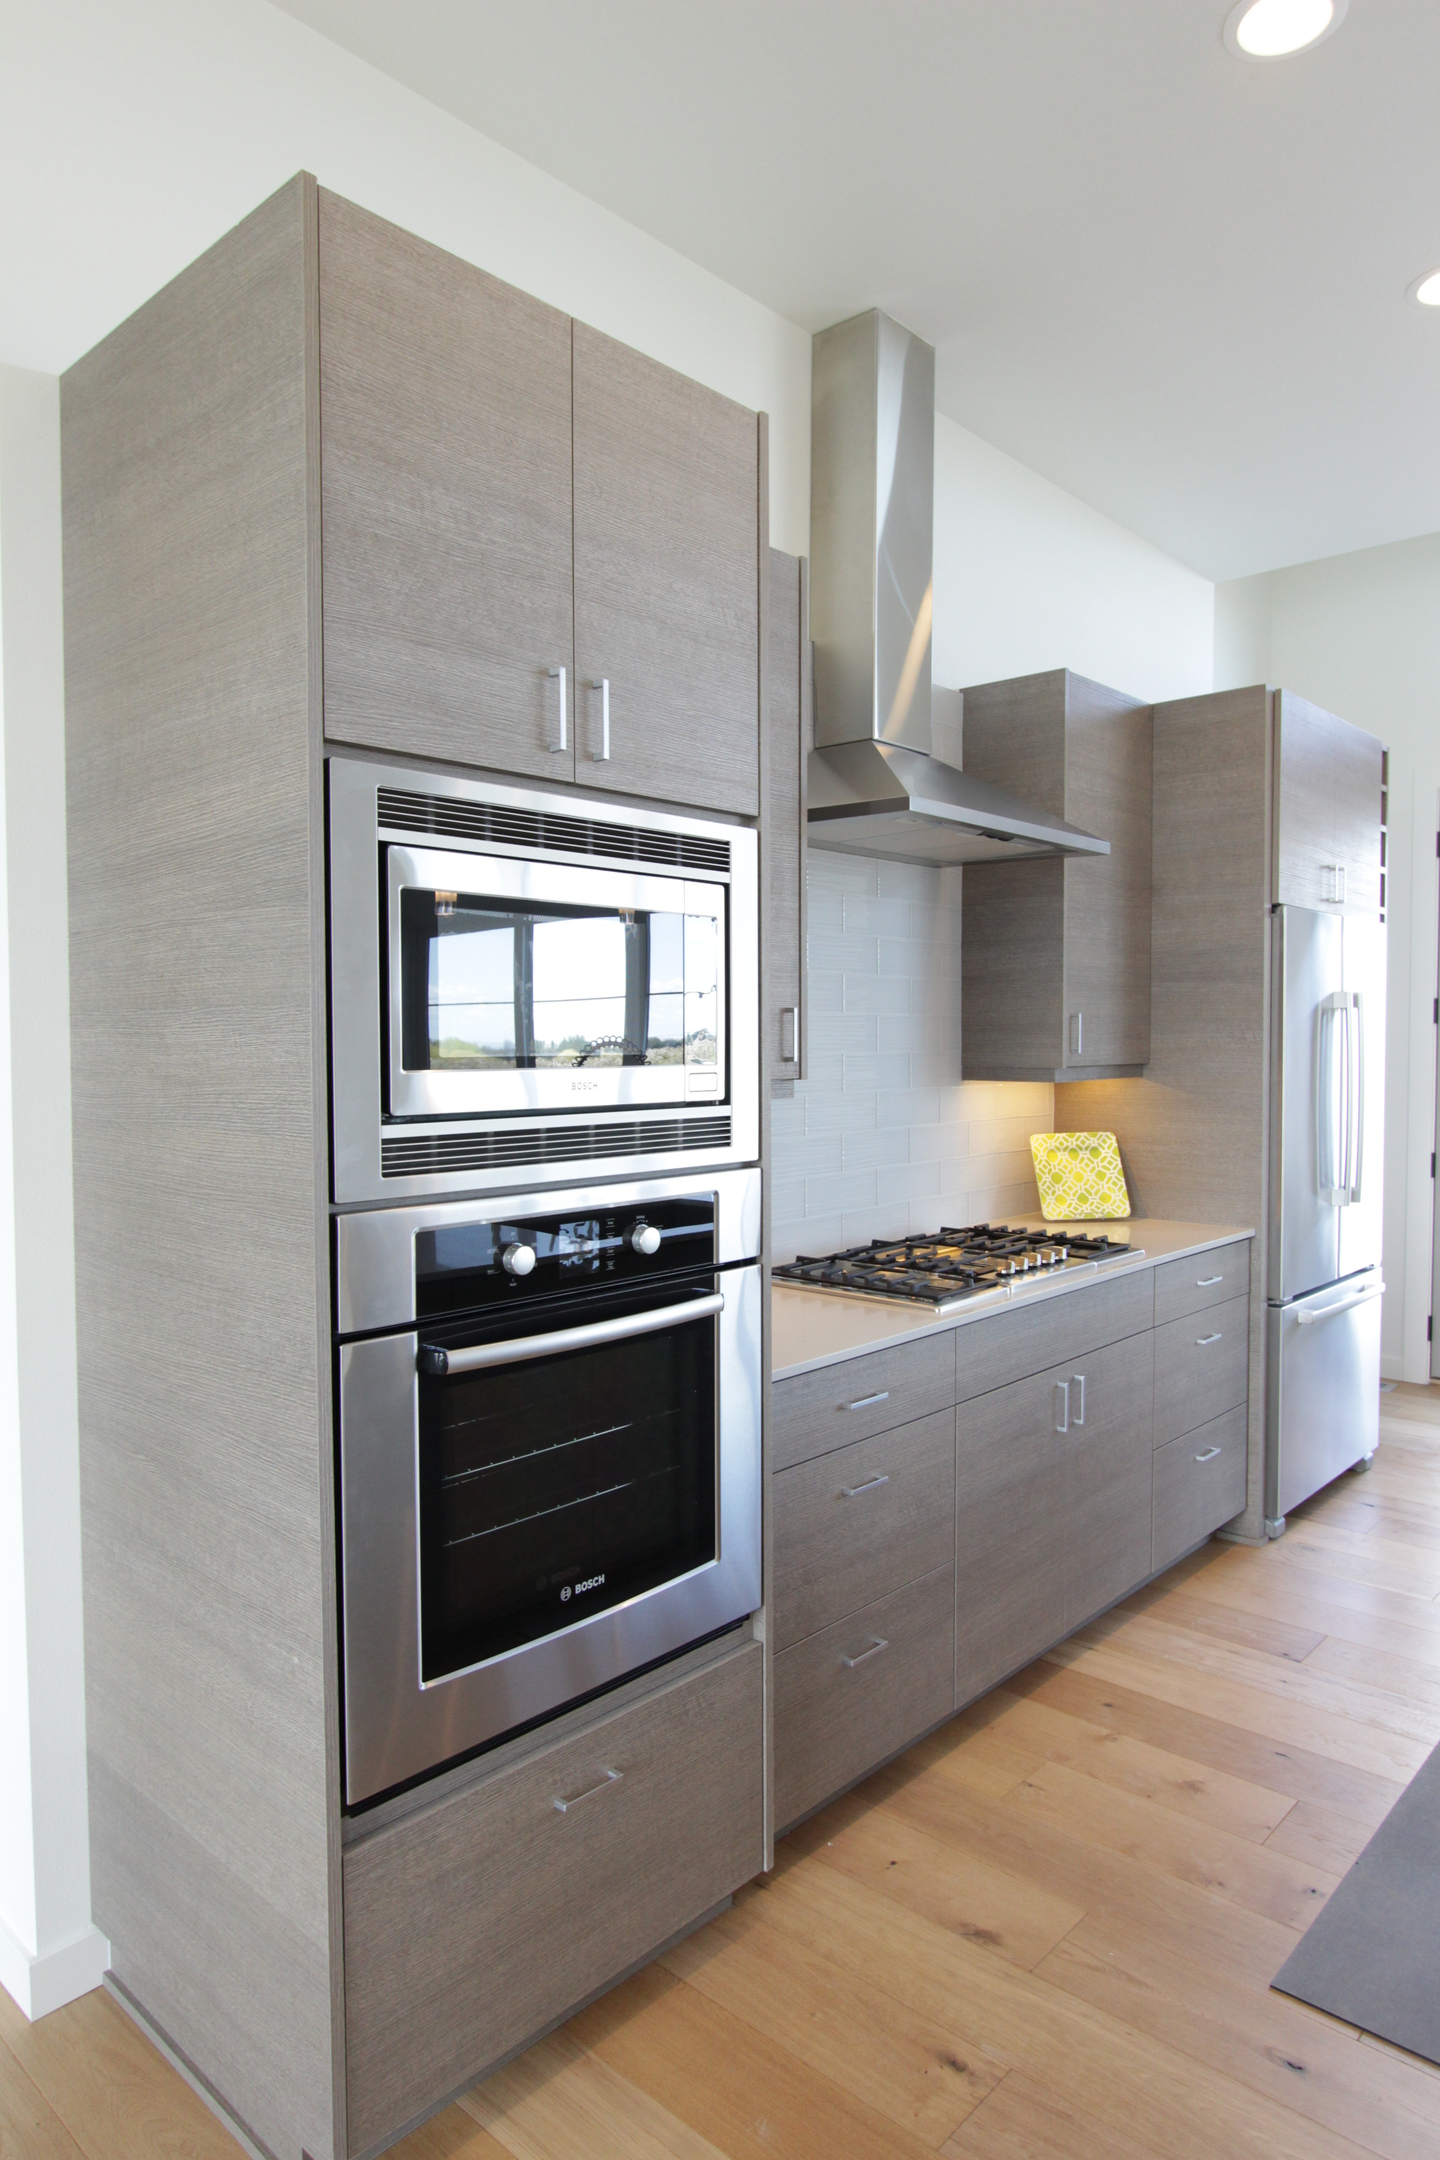 Kitchen  contemporary style  custom laminate  grey   banded door  frameless construction  chimney hood  micro oven cabinet  bank of drawers